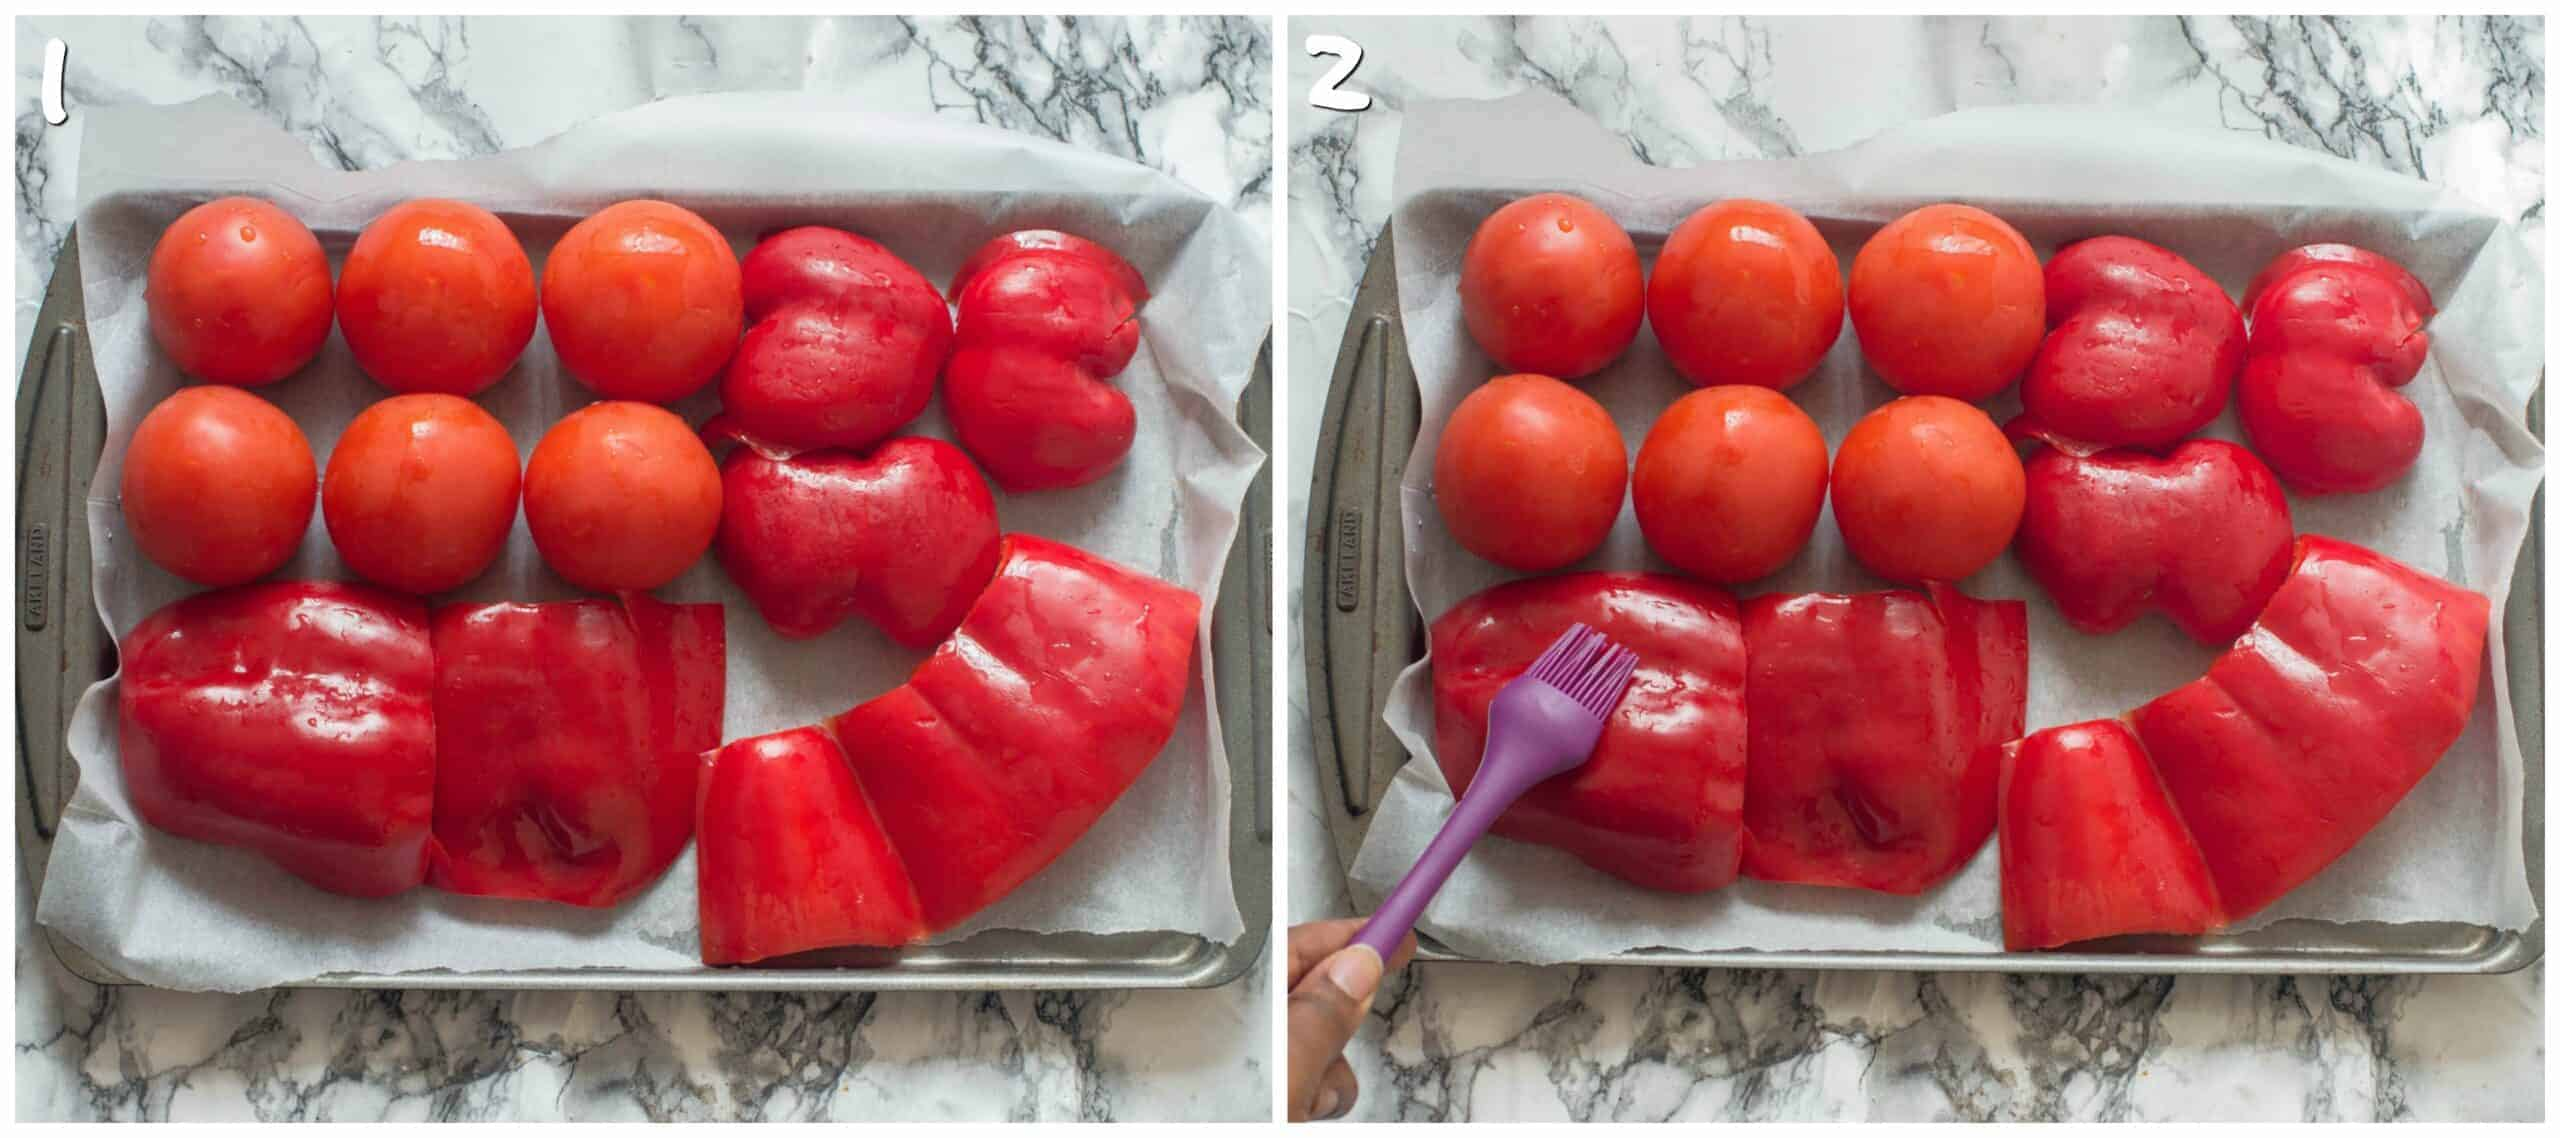 steps 1-2 coating tomatoes and red peppers with oil